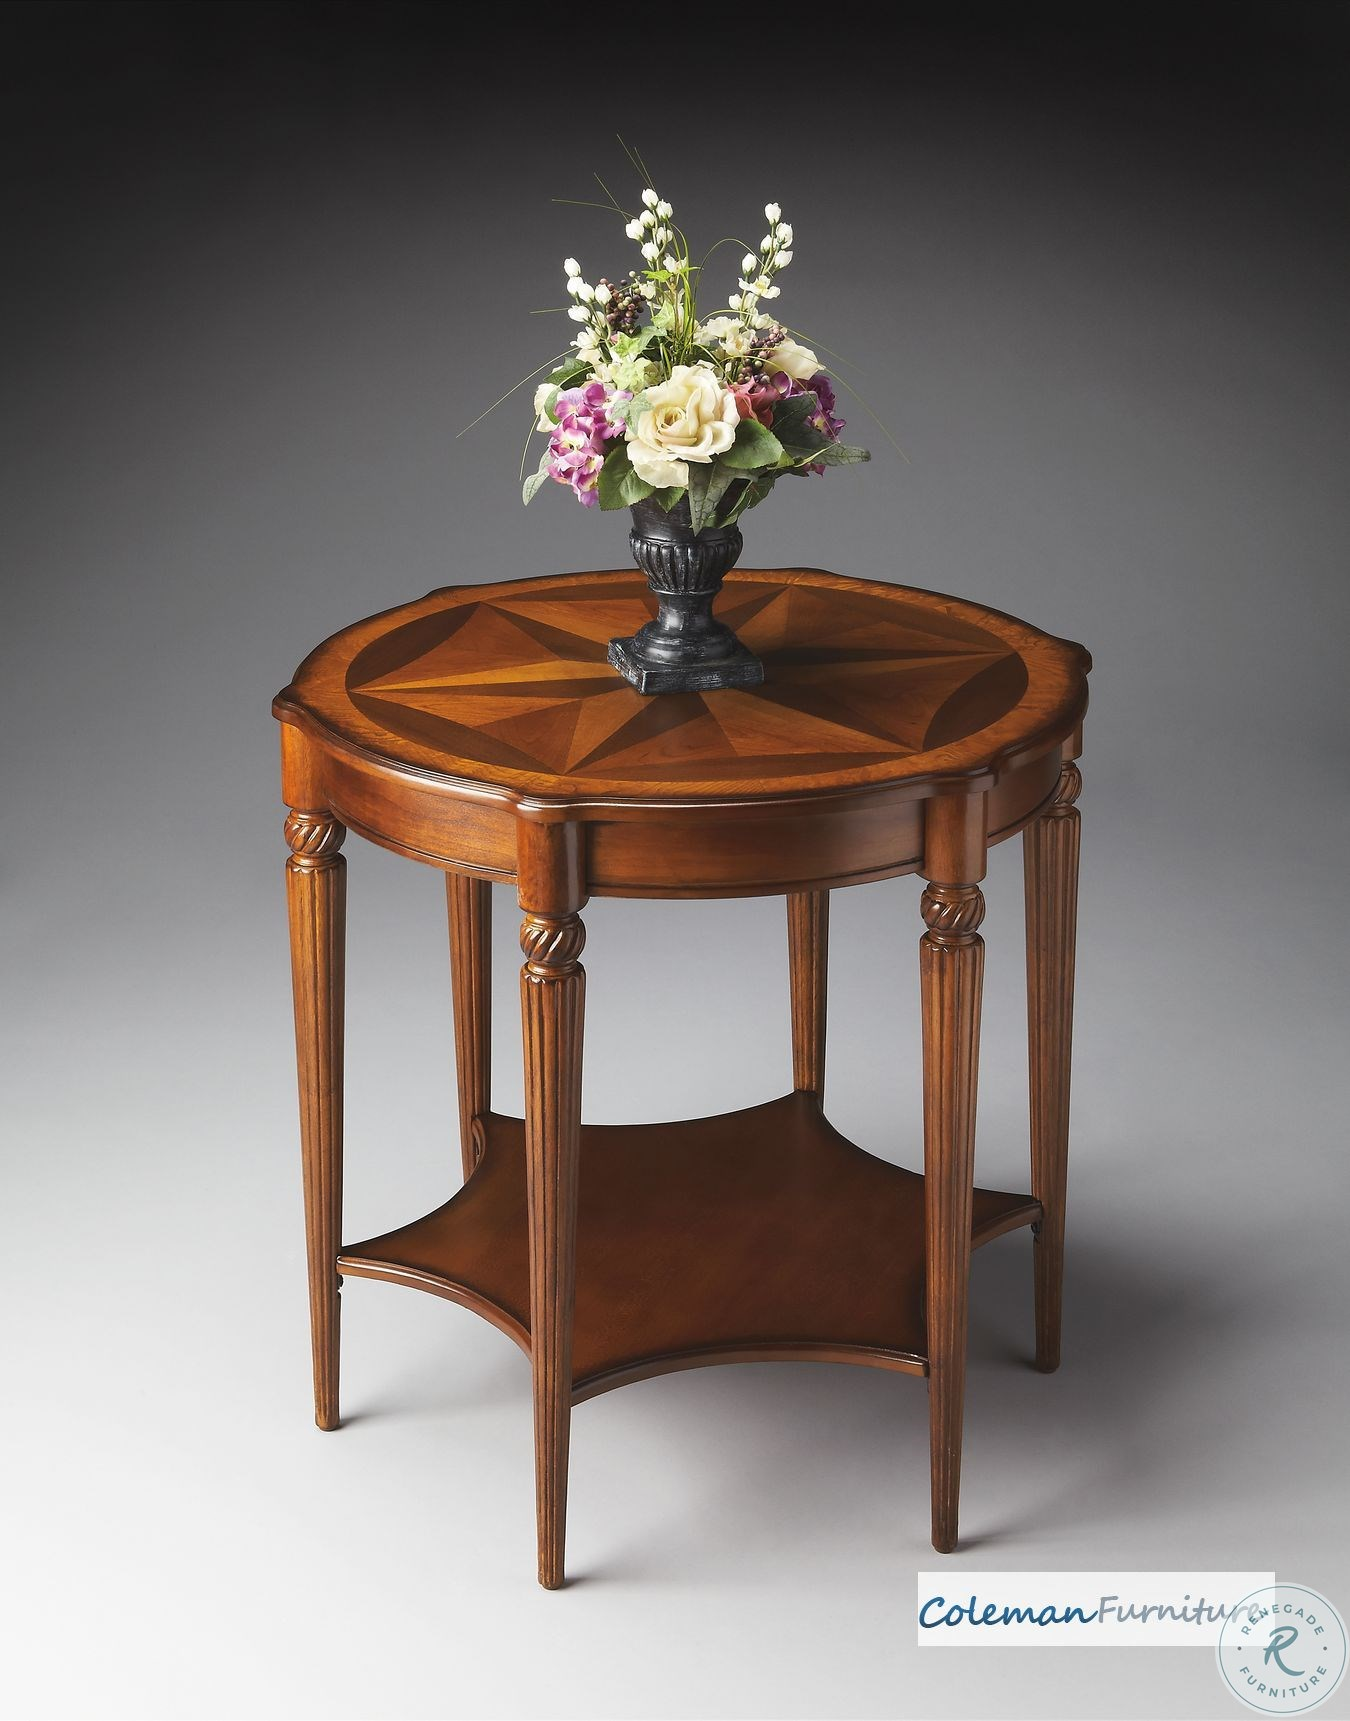 35 best images about tuscan flower arrangements on.htm brown oval drum table from hekman furniture coleman furniture  brown oval drum table from hekman